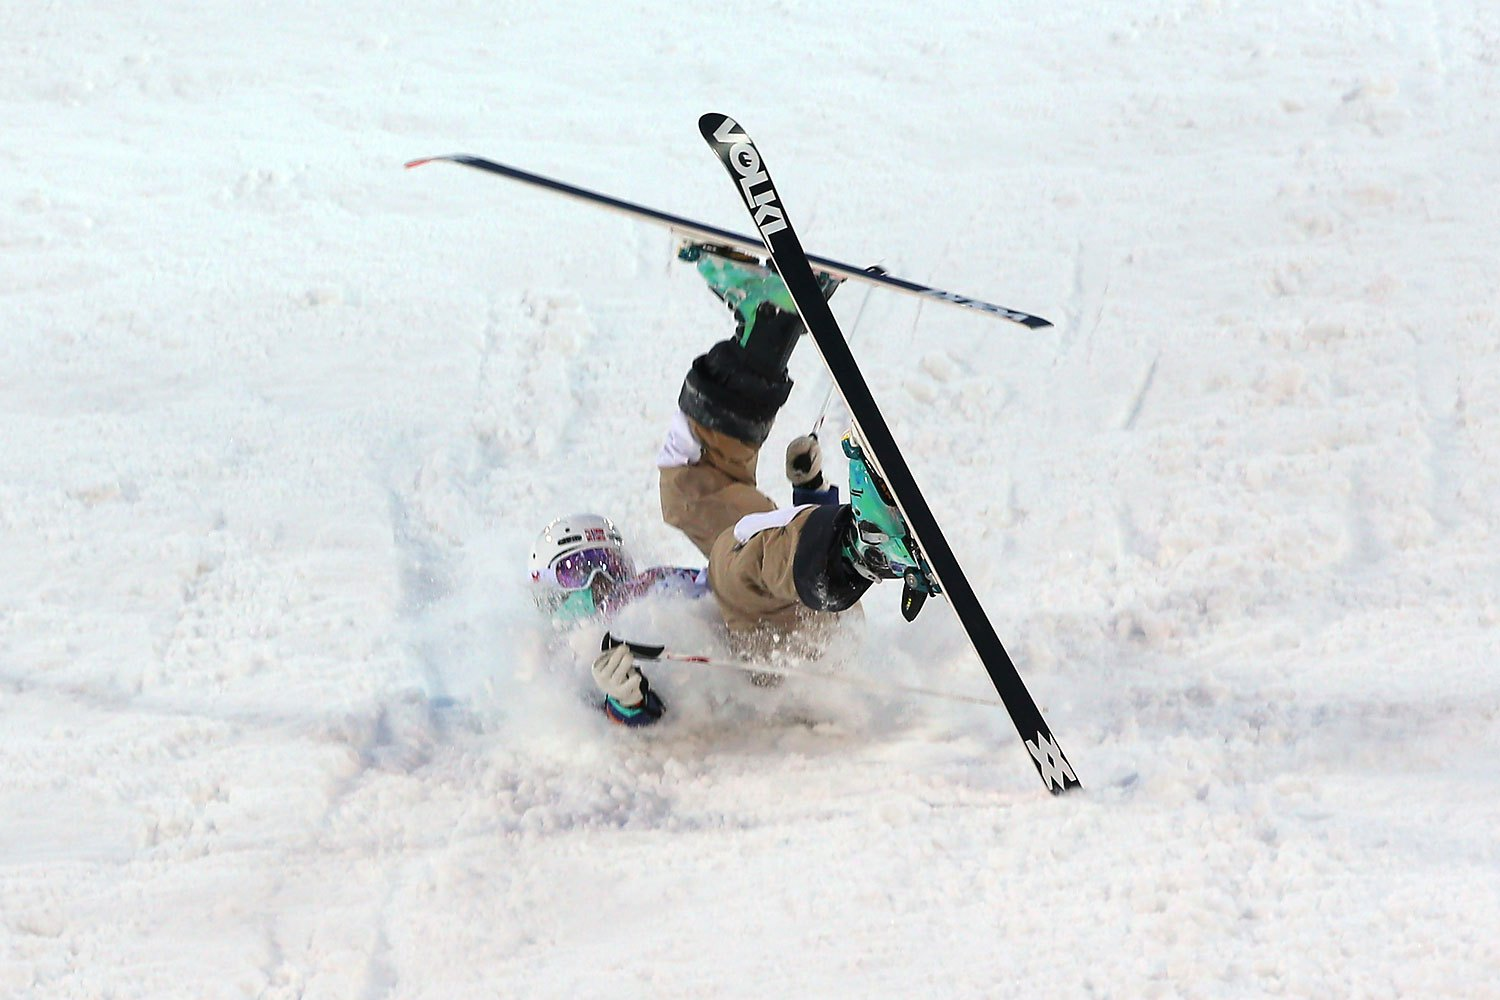 Hedvig Wessel of Norway crashes out in the Ladies' Moguls Qualification during day 1 of the Sochi 2014 Winter Olympics at Rosa Khutor Extreme Park on Feb. 8, 2014.